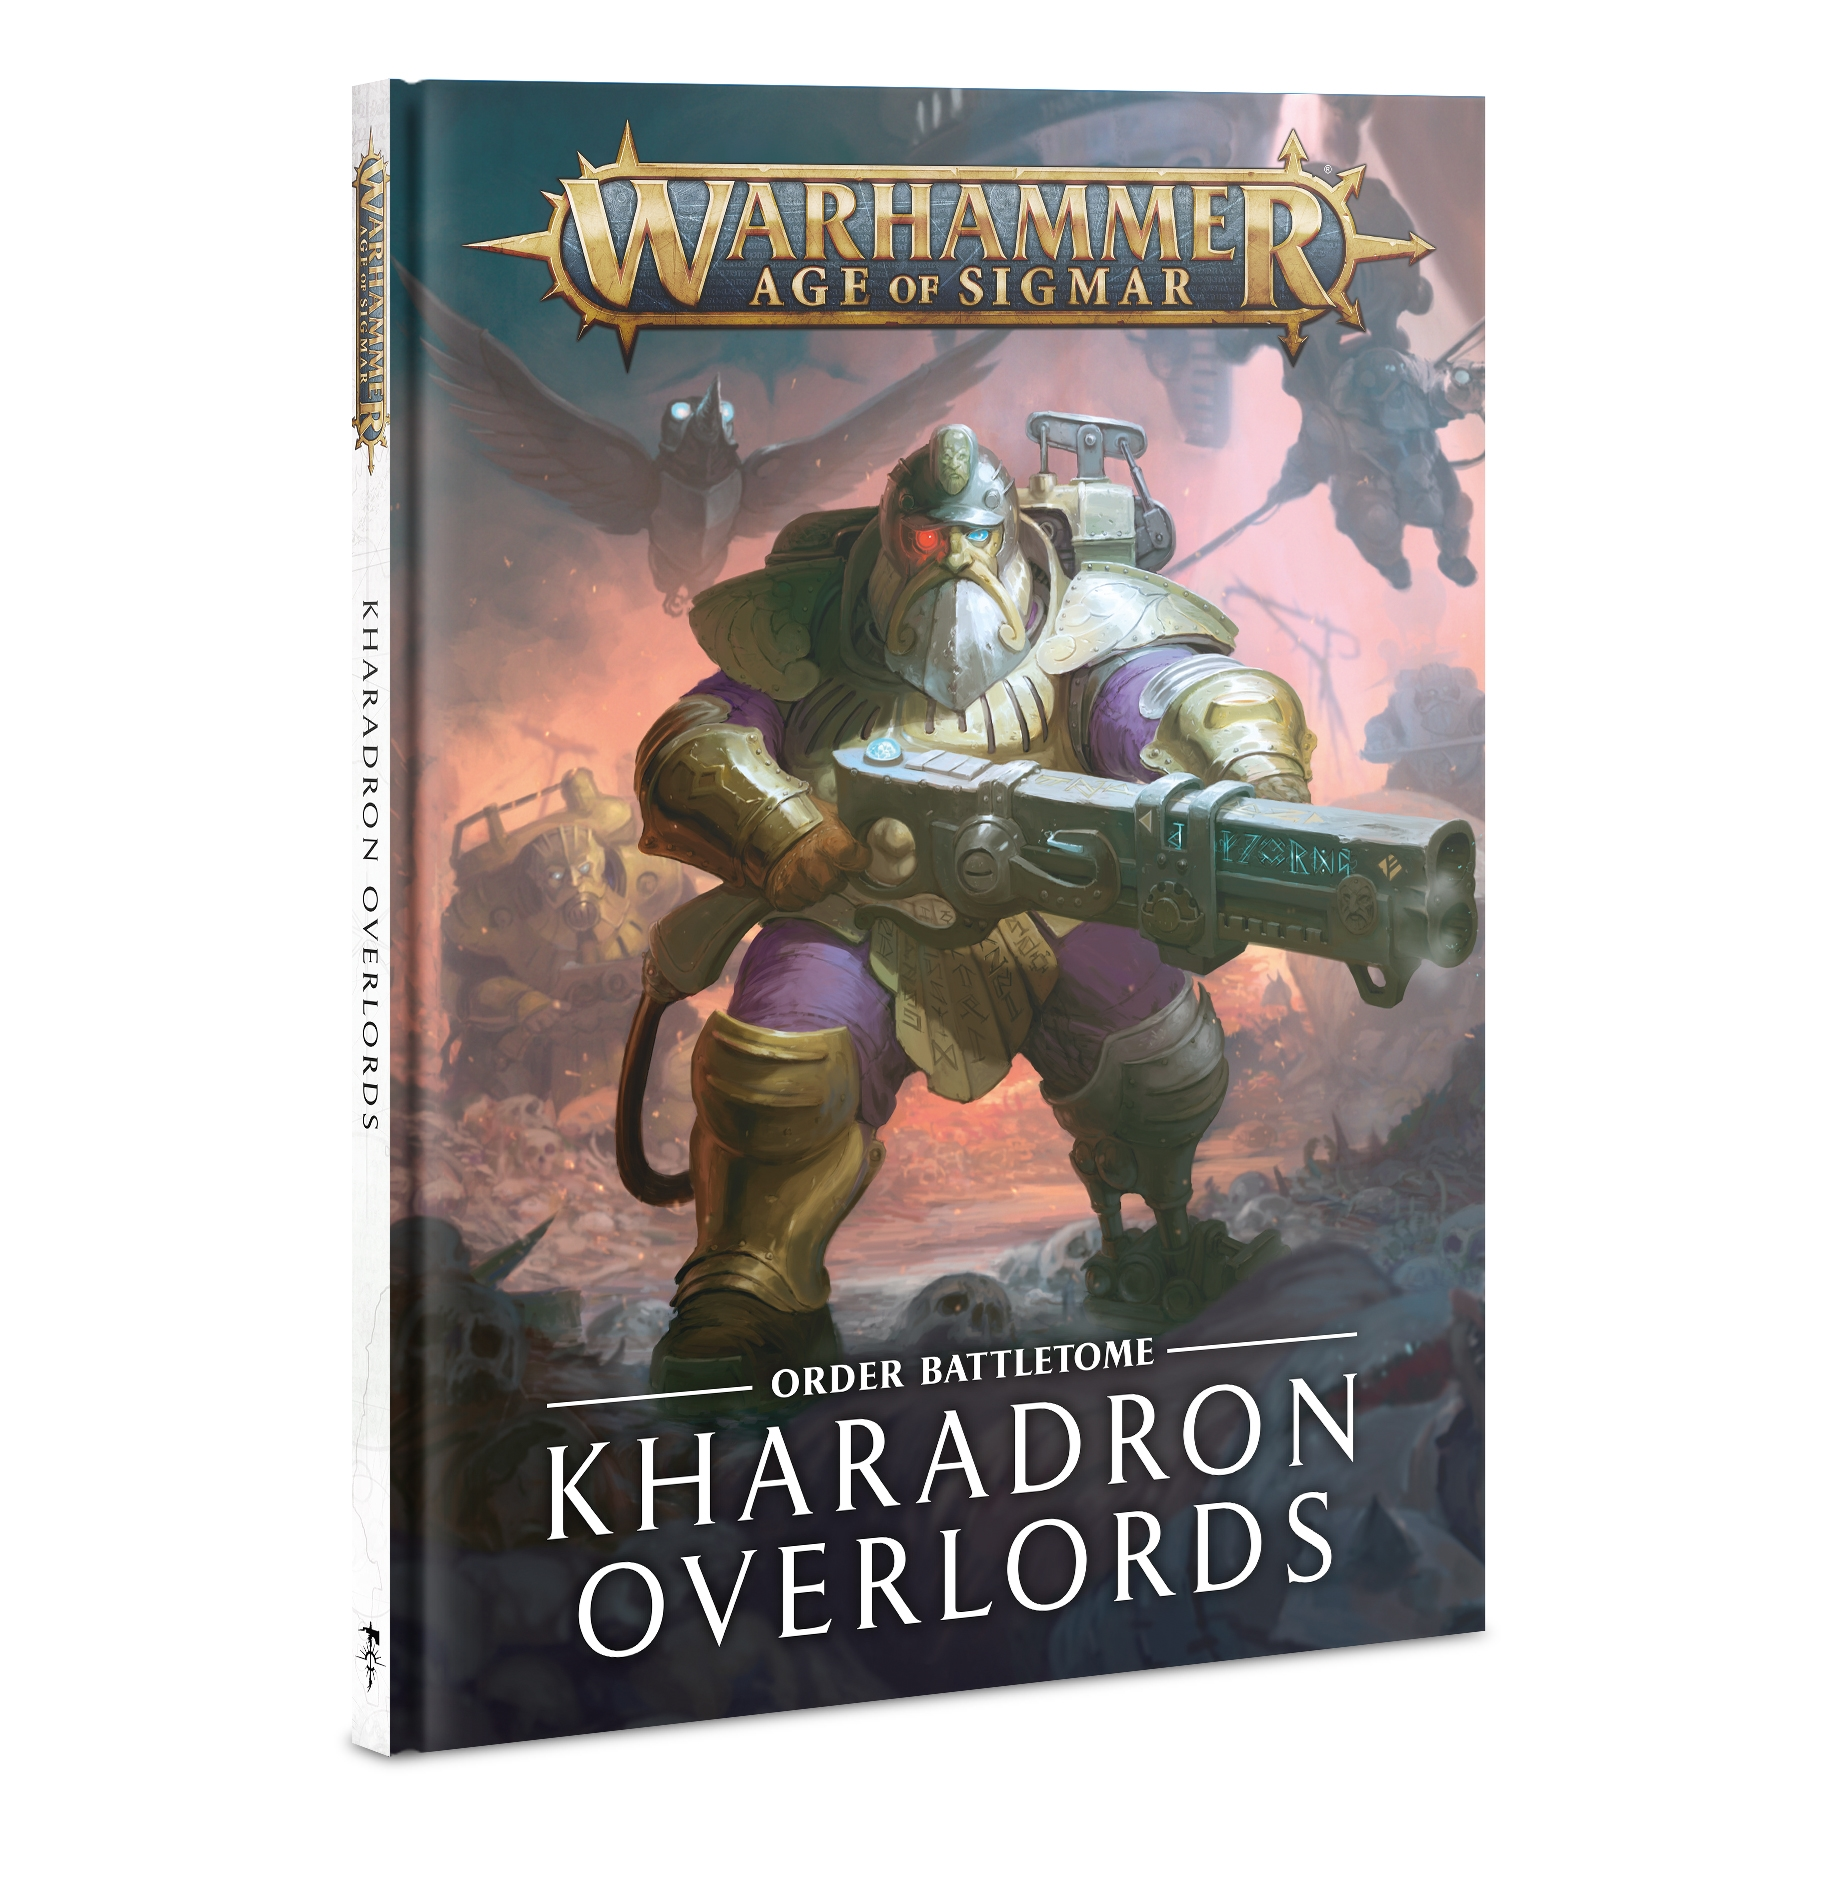 Warhammer Age of Sigmar: Battletome - Kharadron Overlords  (2020 Edition)